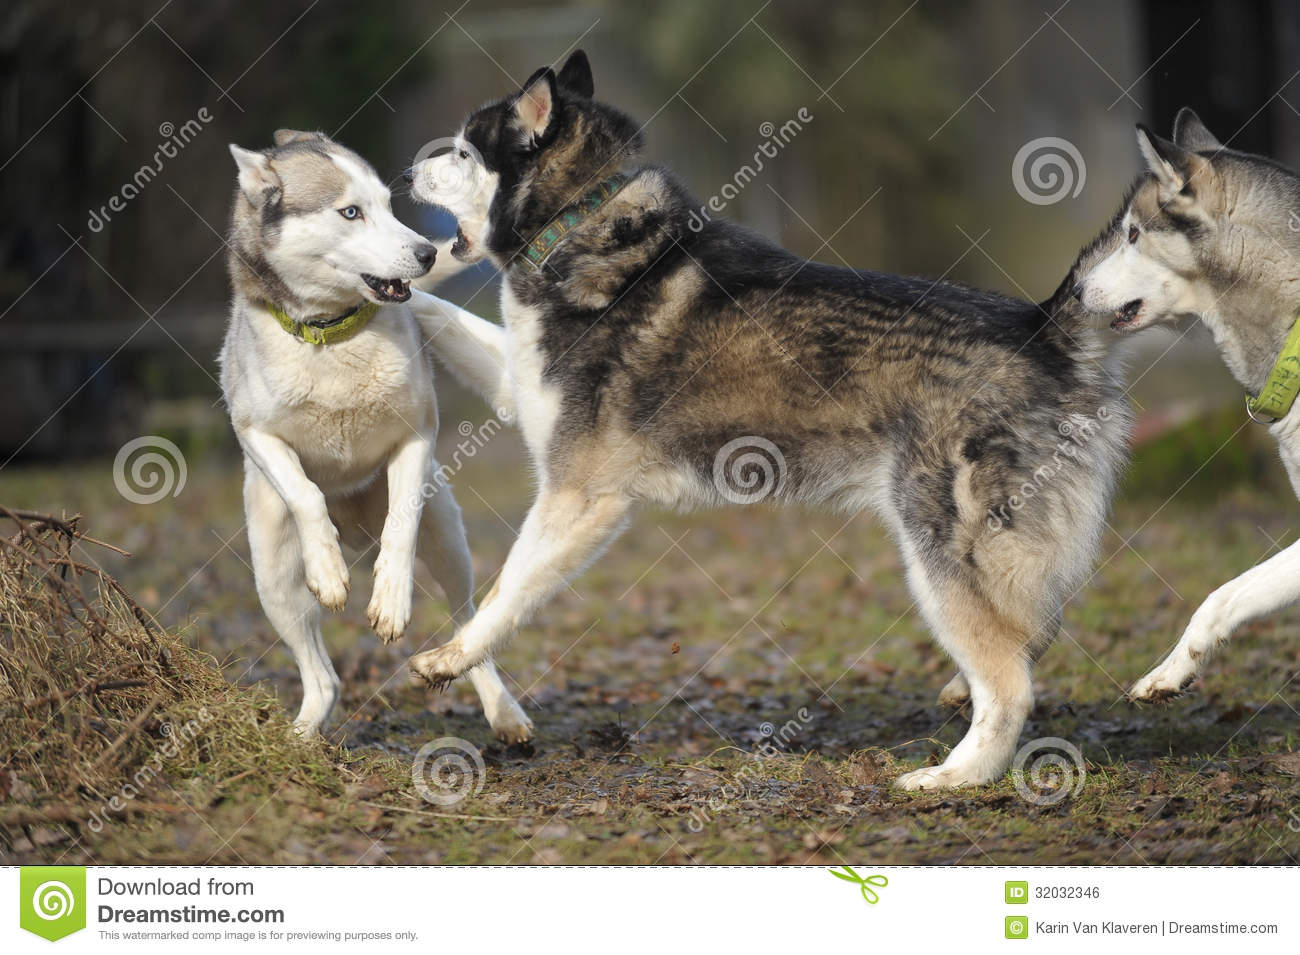 how to tell when dogs are playing or fighting